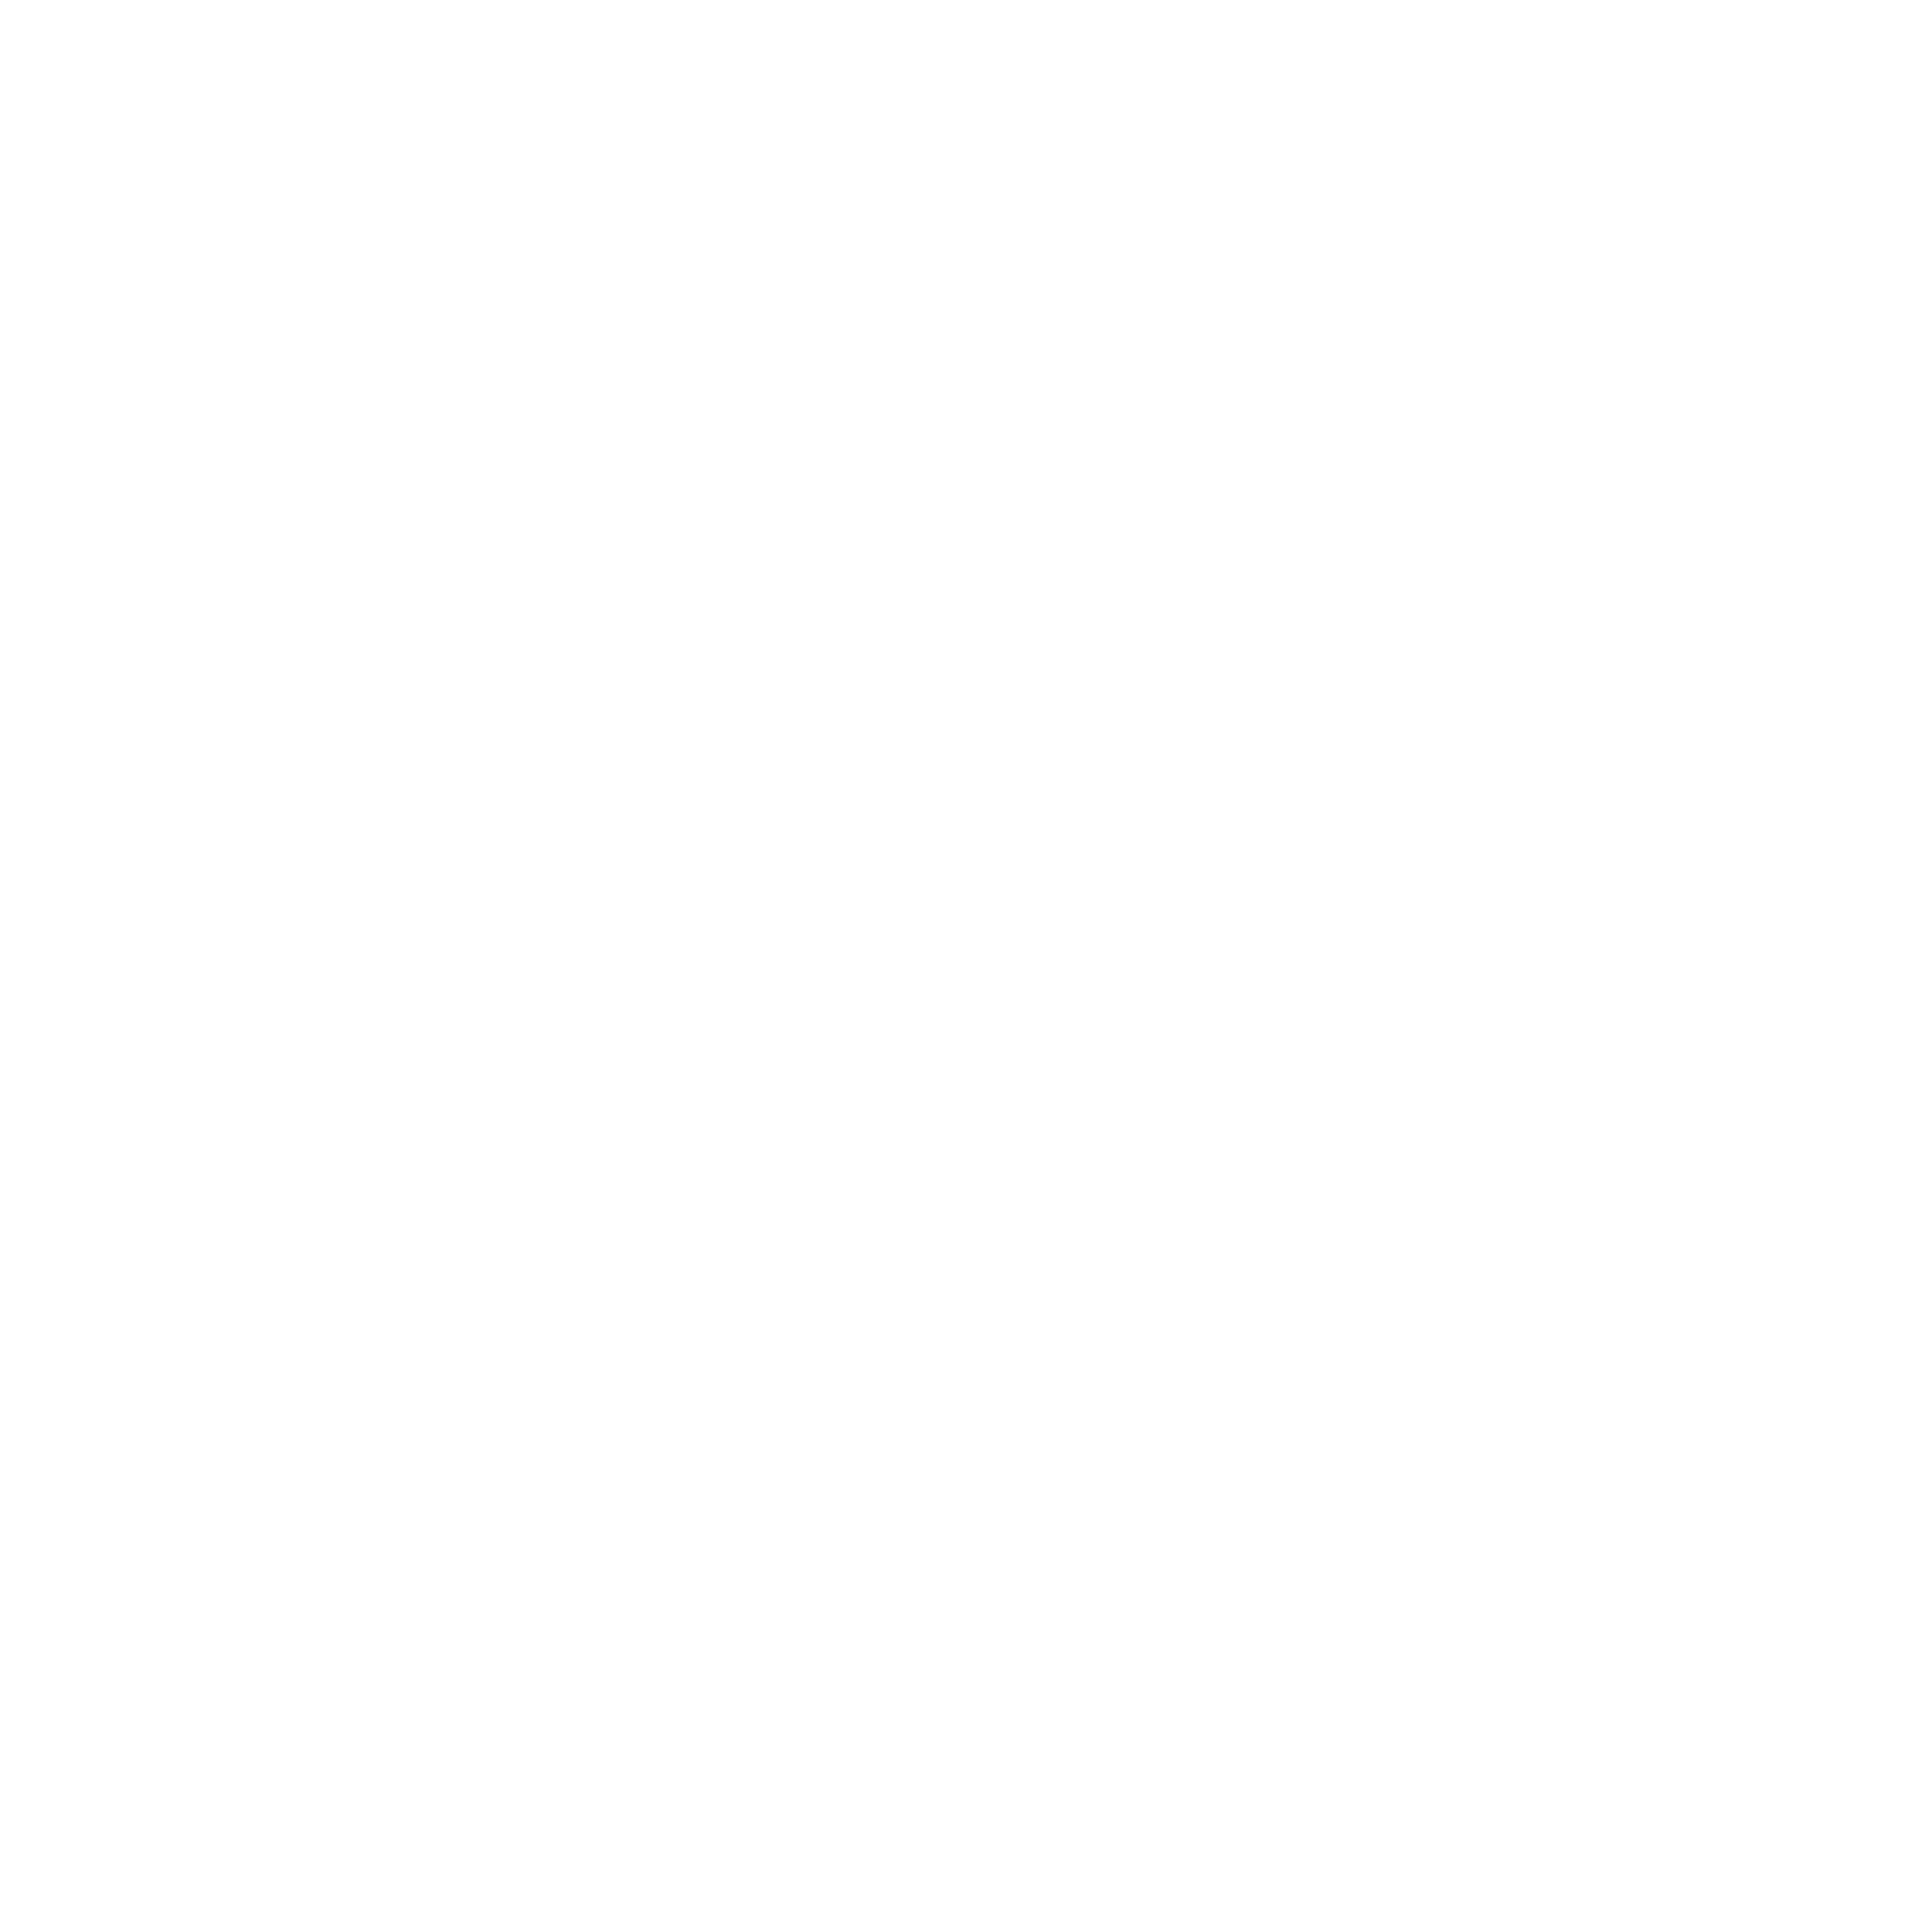 wavrunners__white logo_transparent.png